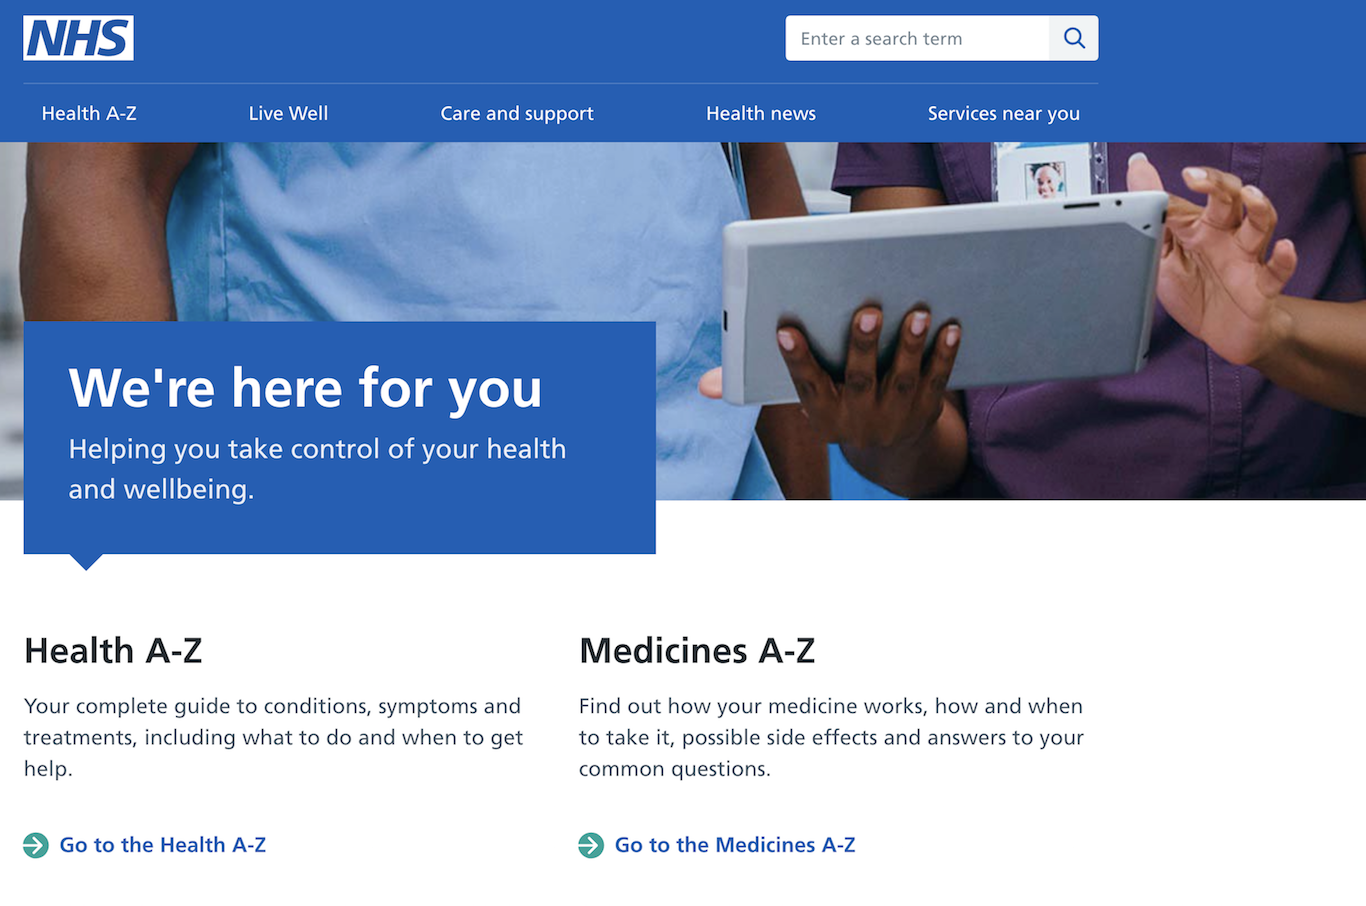 Home page of nhs.uk